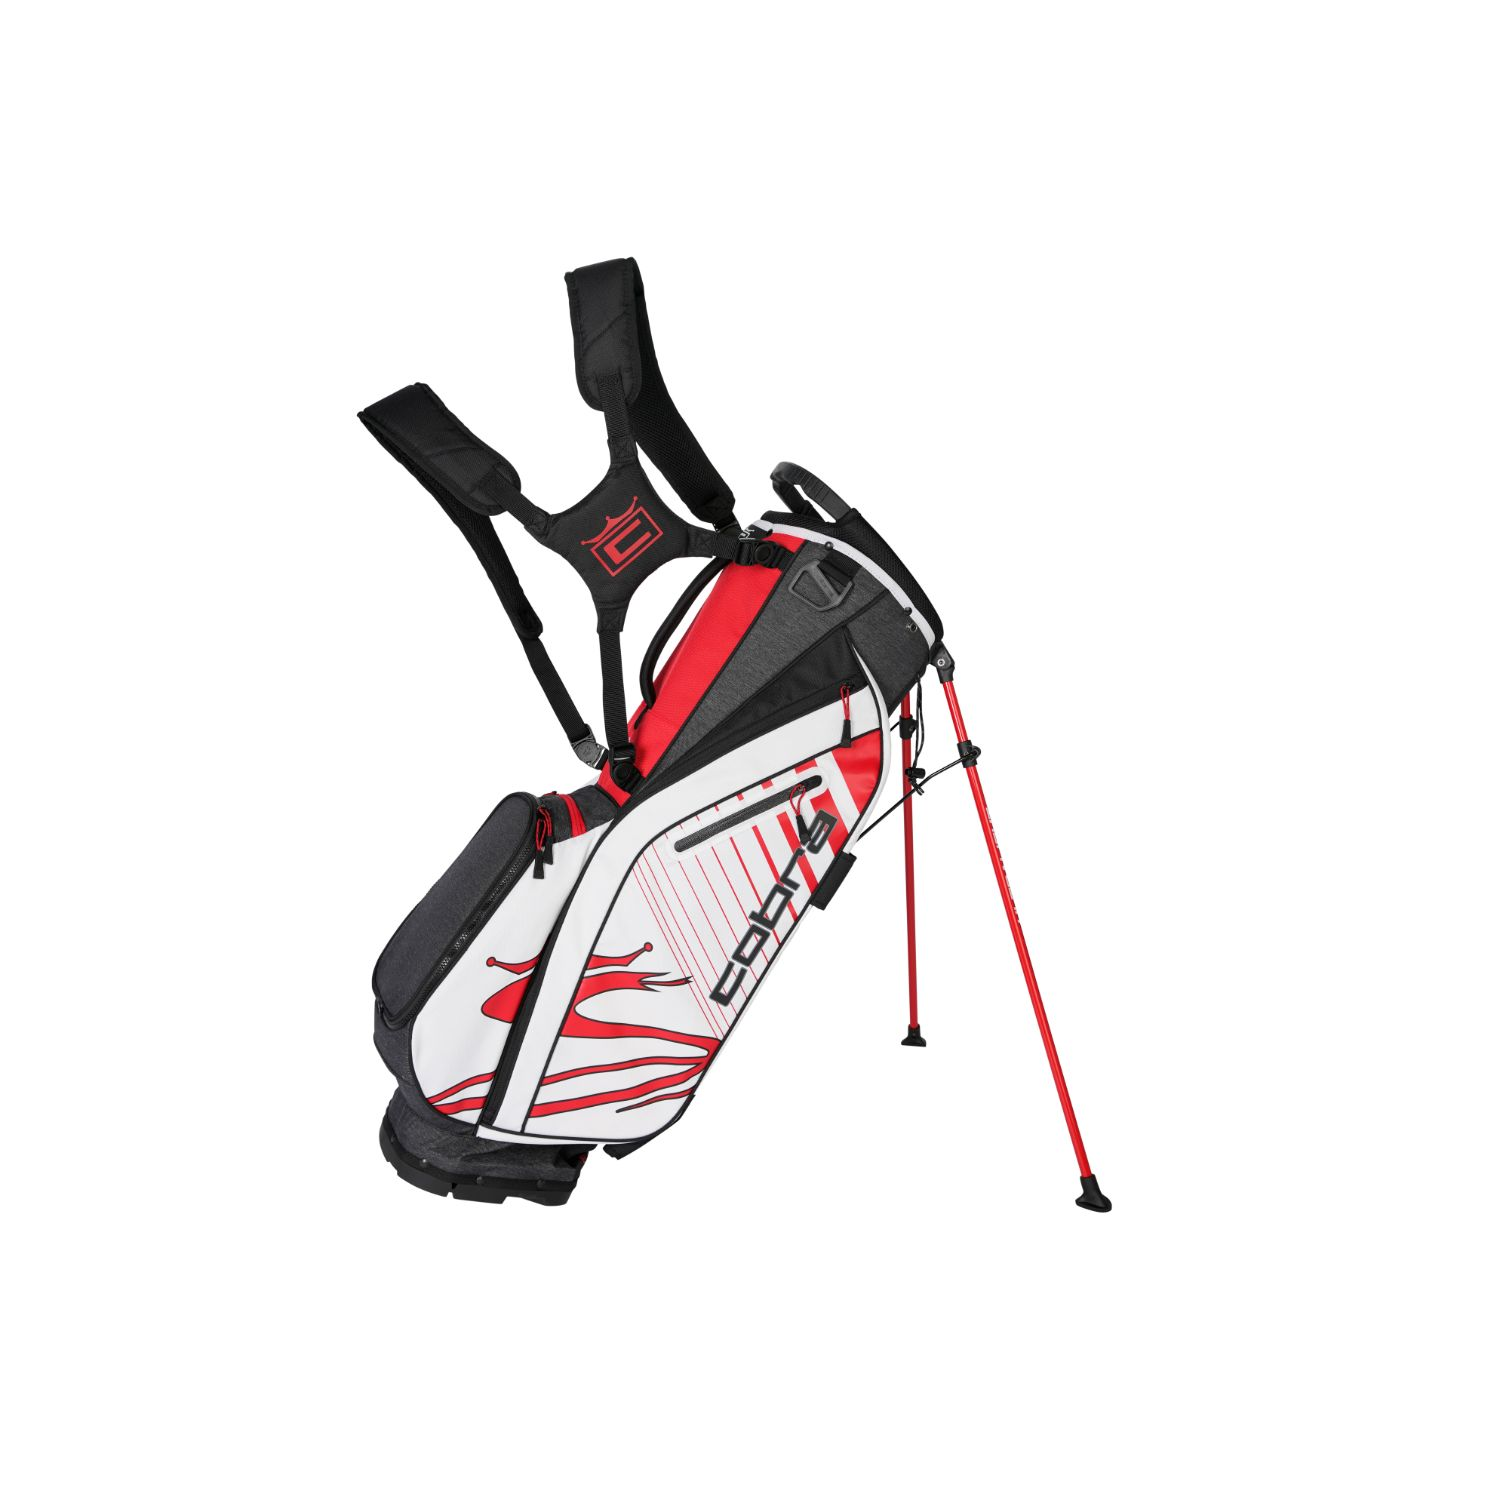 Cobra Golf 2020 Ultralight Stand Bag Black-High Risk Red-Wht